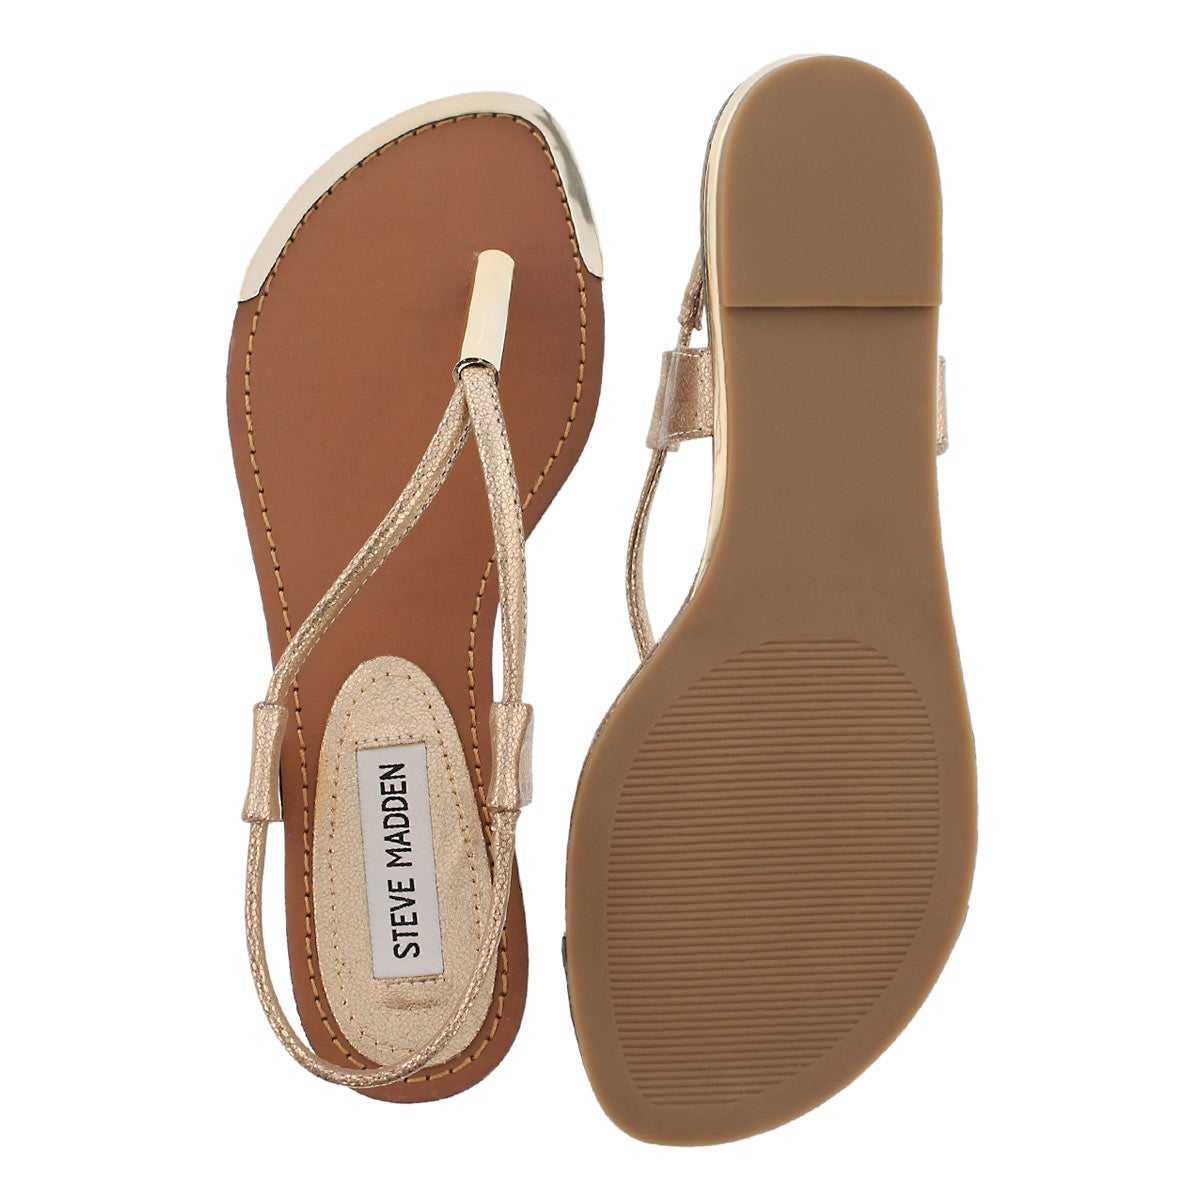 Lds Holland gold t-strap thong sandal